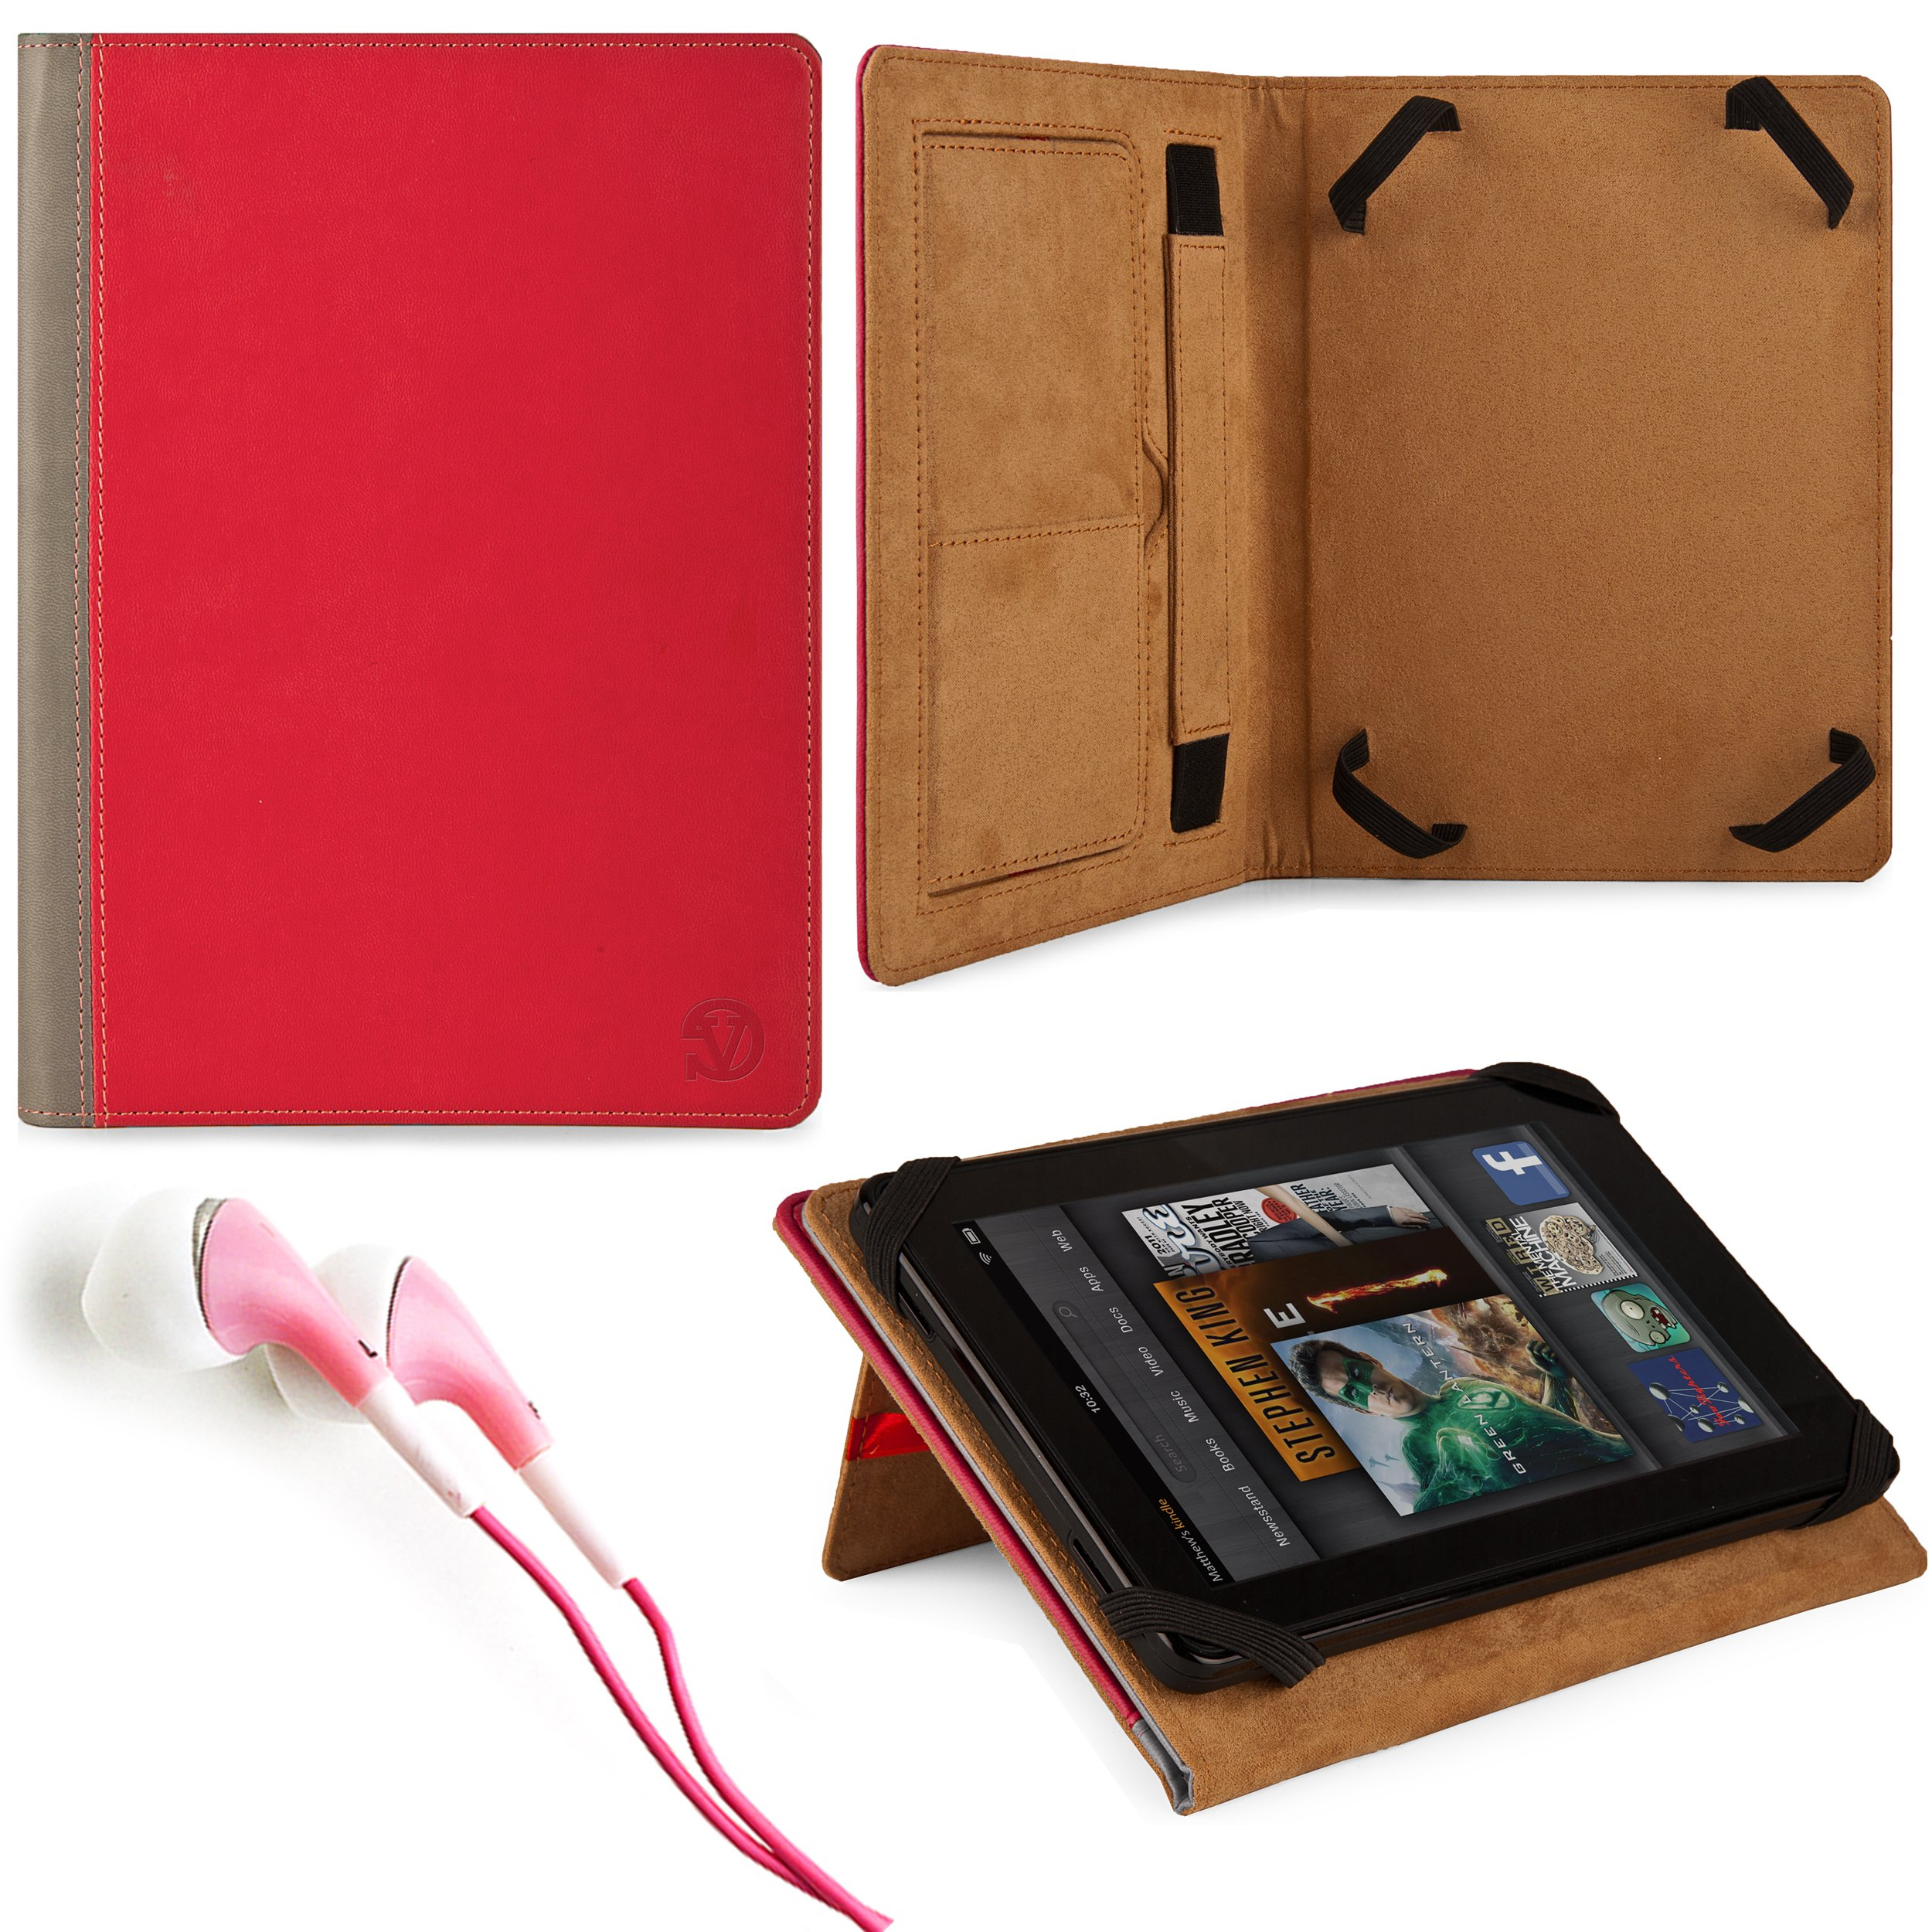 Marry Edition VG Brand Folio Stand Alone Protective Leatherette Carrying Case Cover Case Cover-(2 Tone Pink & Gray) for Acer Iconia TAB A100-07U08U / A110-07g08u 7-inch Android Tablets + Pink Stereo Hifi Noise Isolating Premium Headphones with Silicone Ea